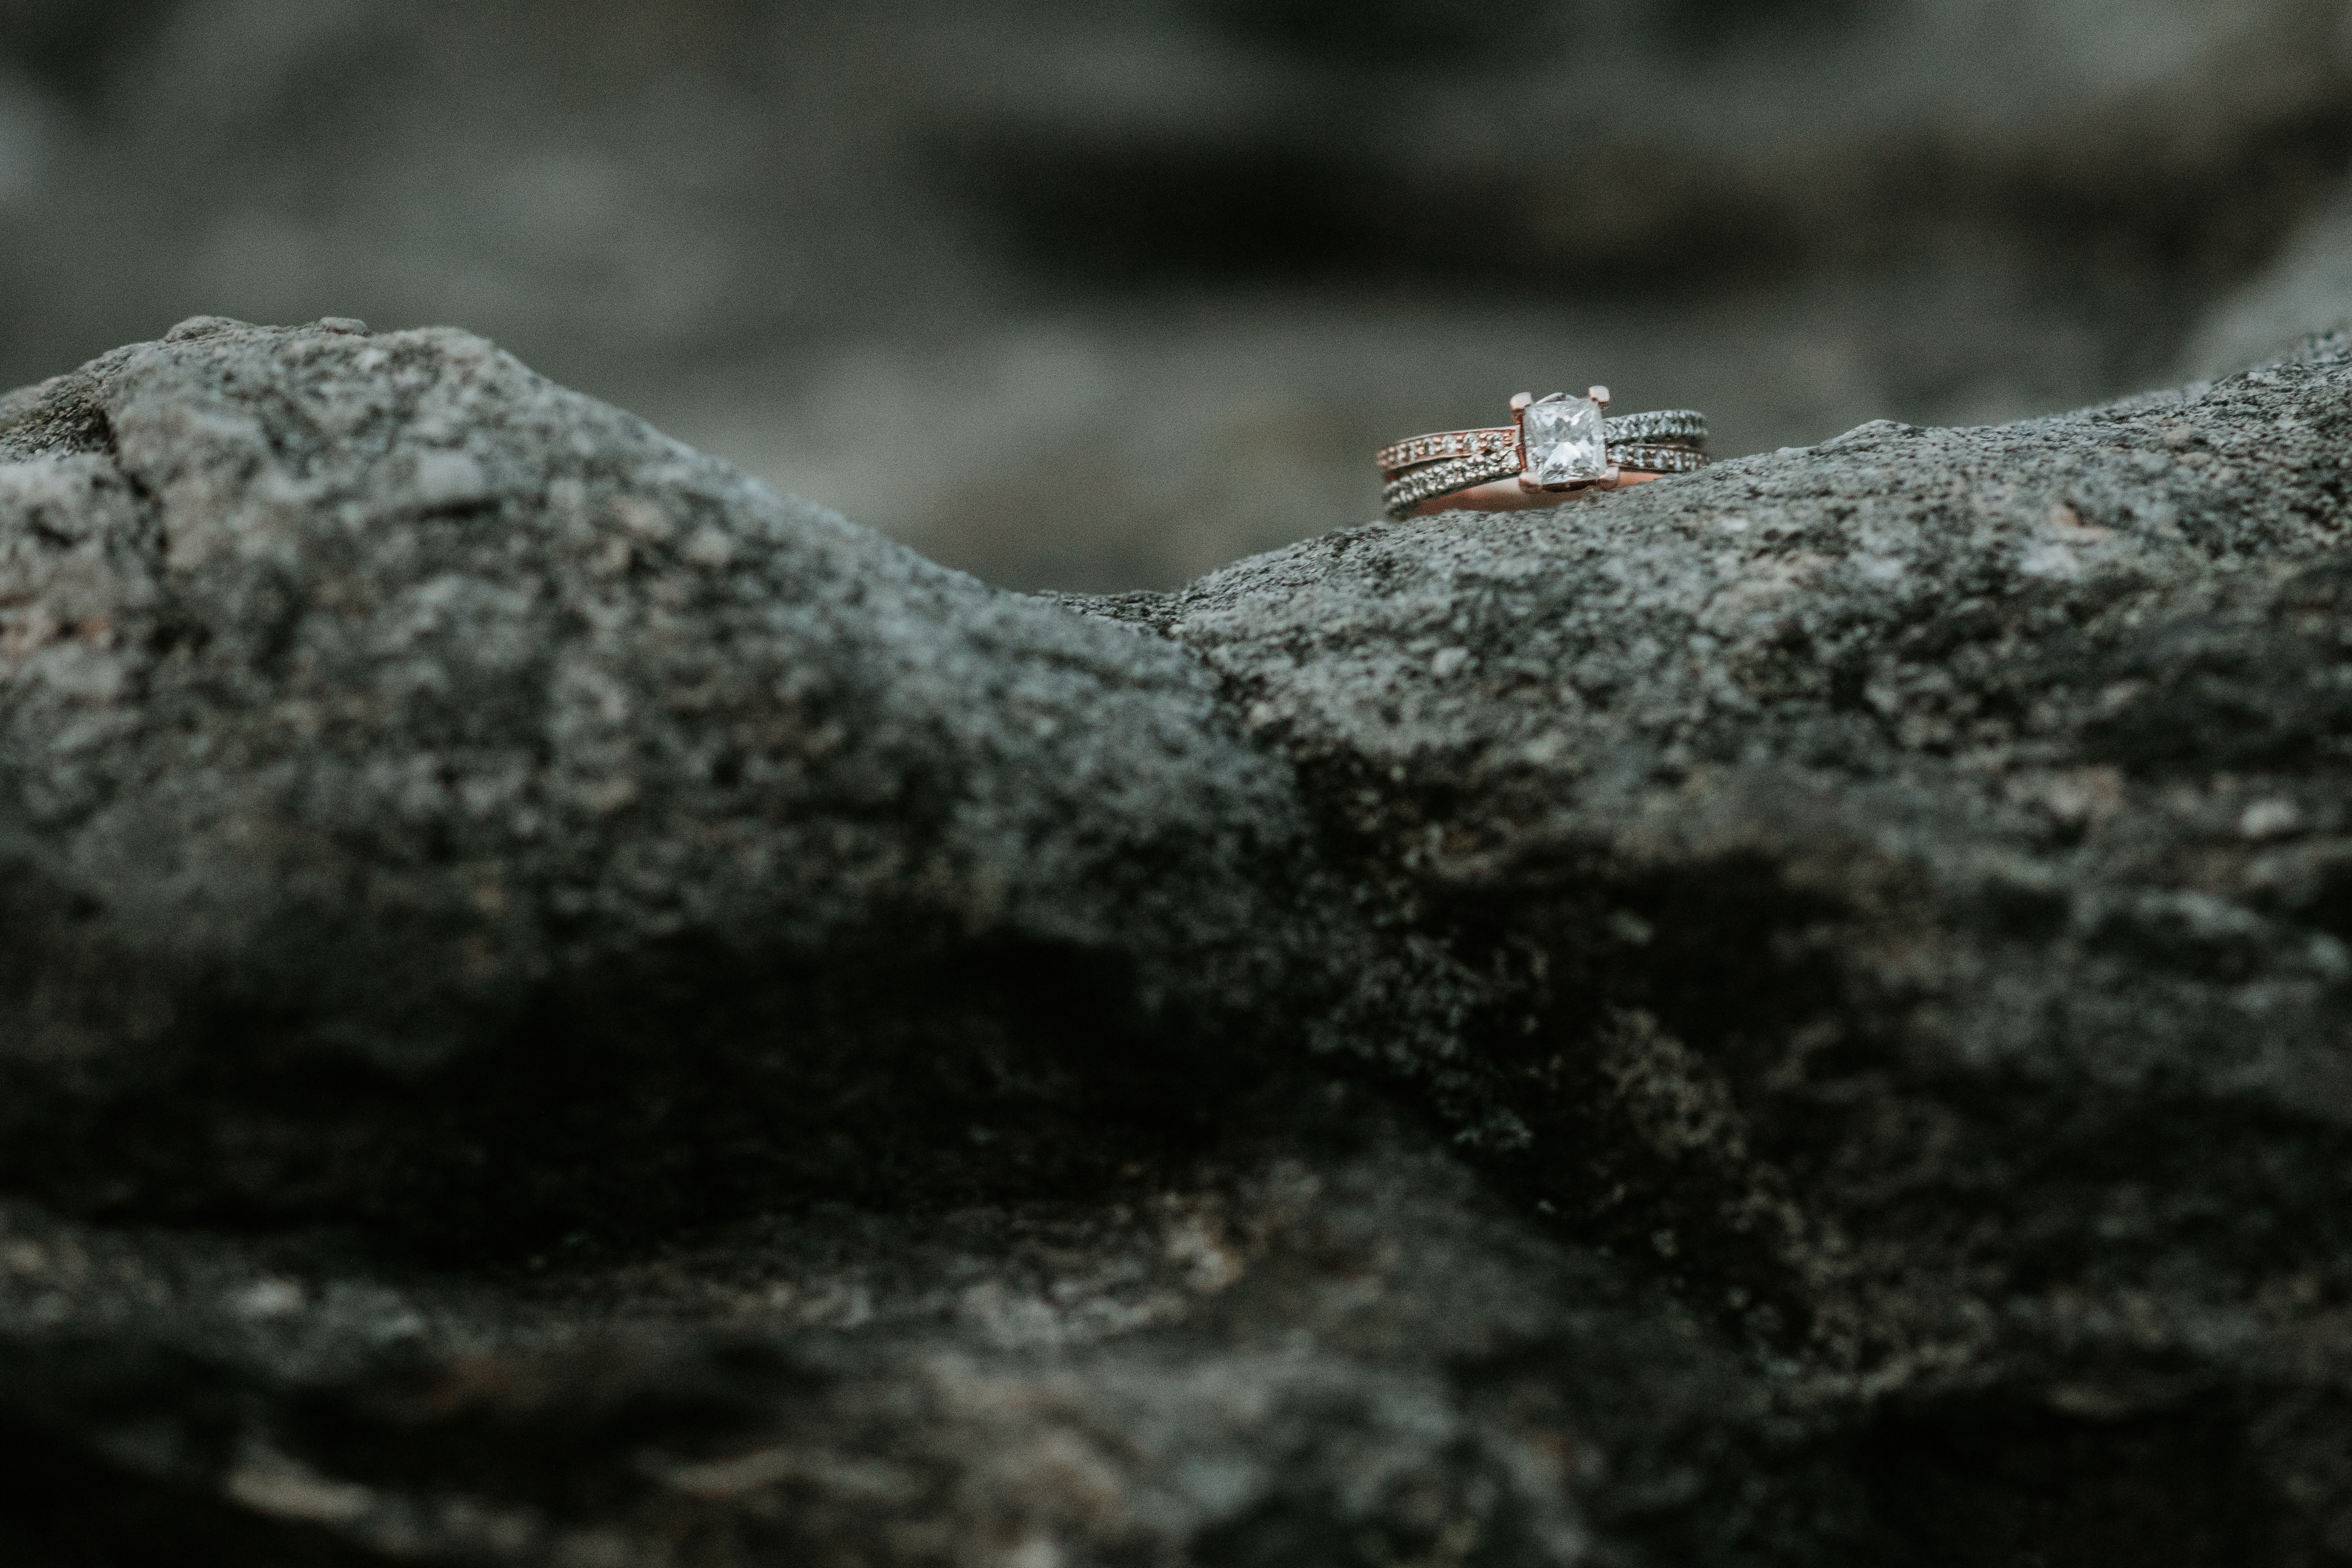 gold-colored clear gemstone encrusted ring on rock